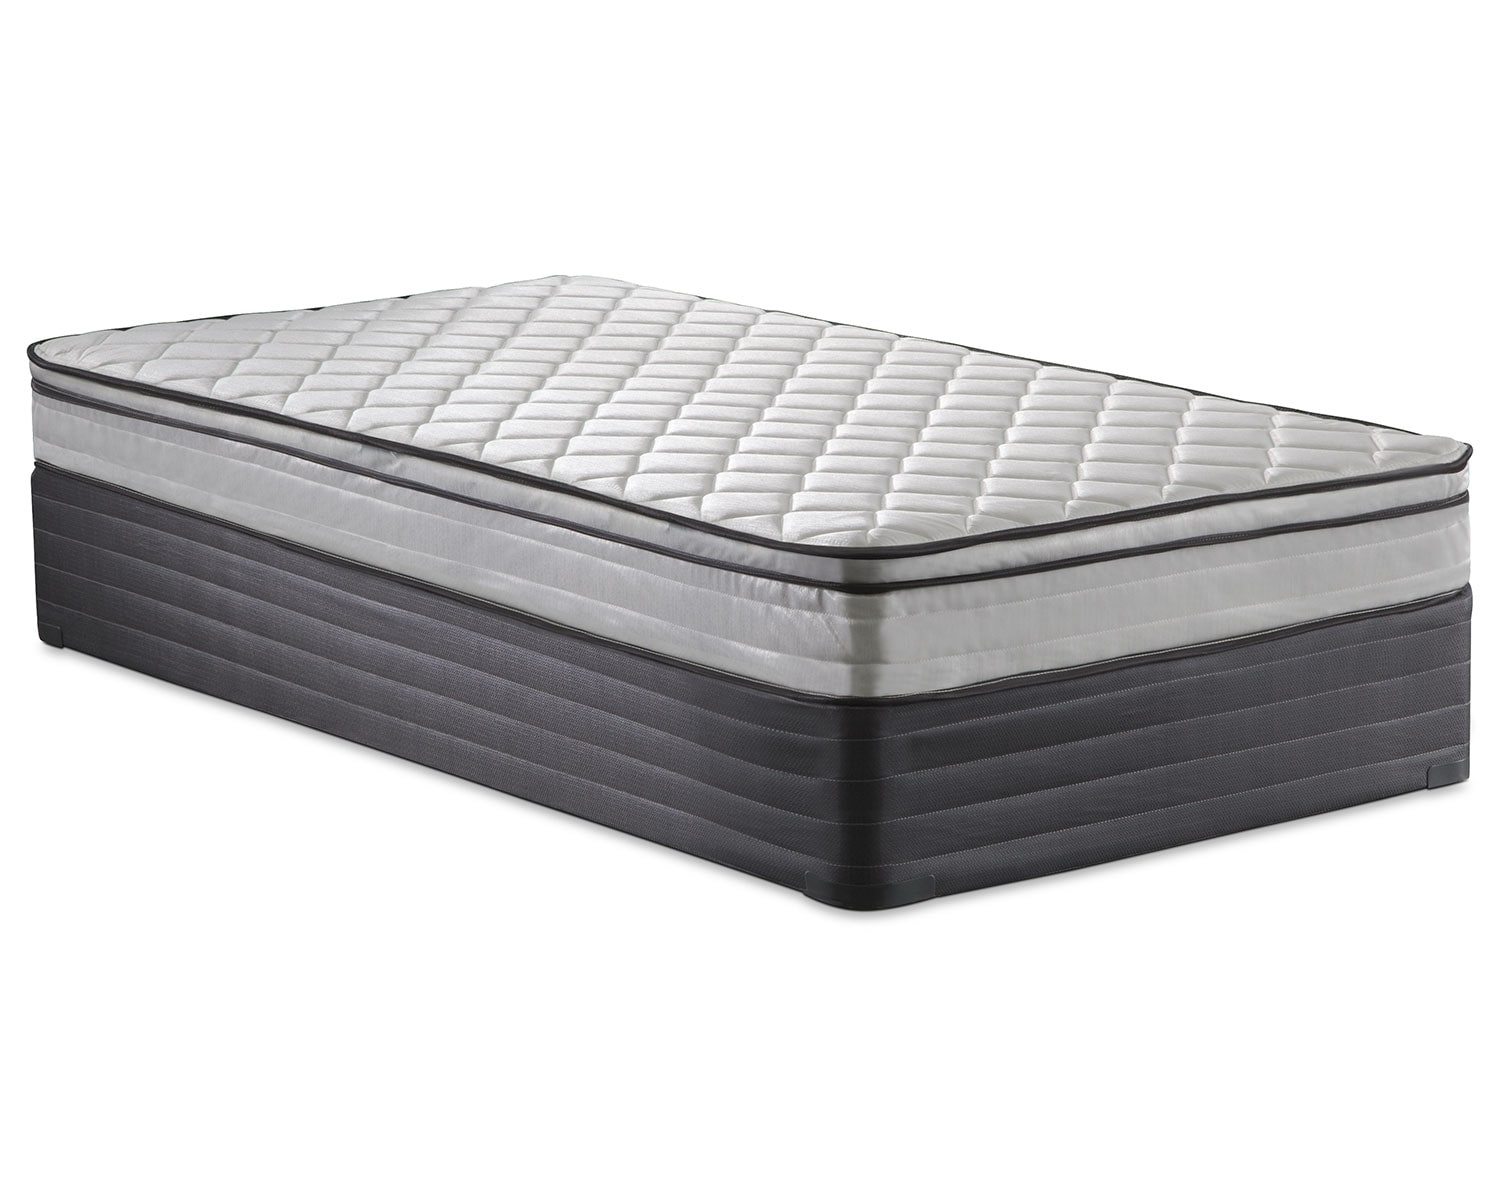 The Mirage Medium Firm Mattress Collection